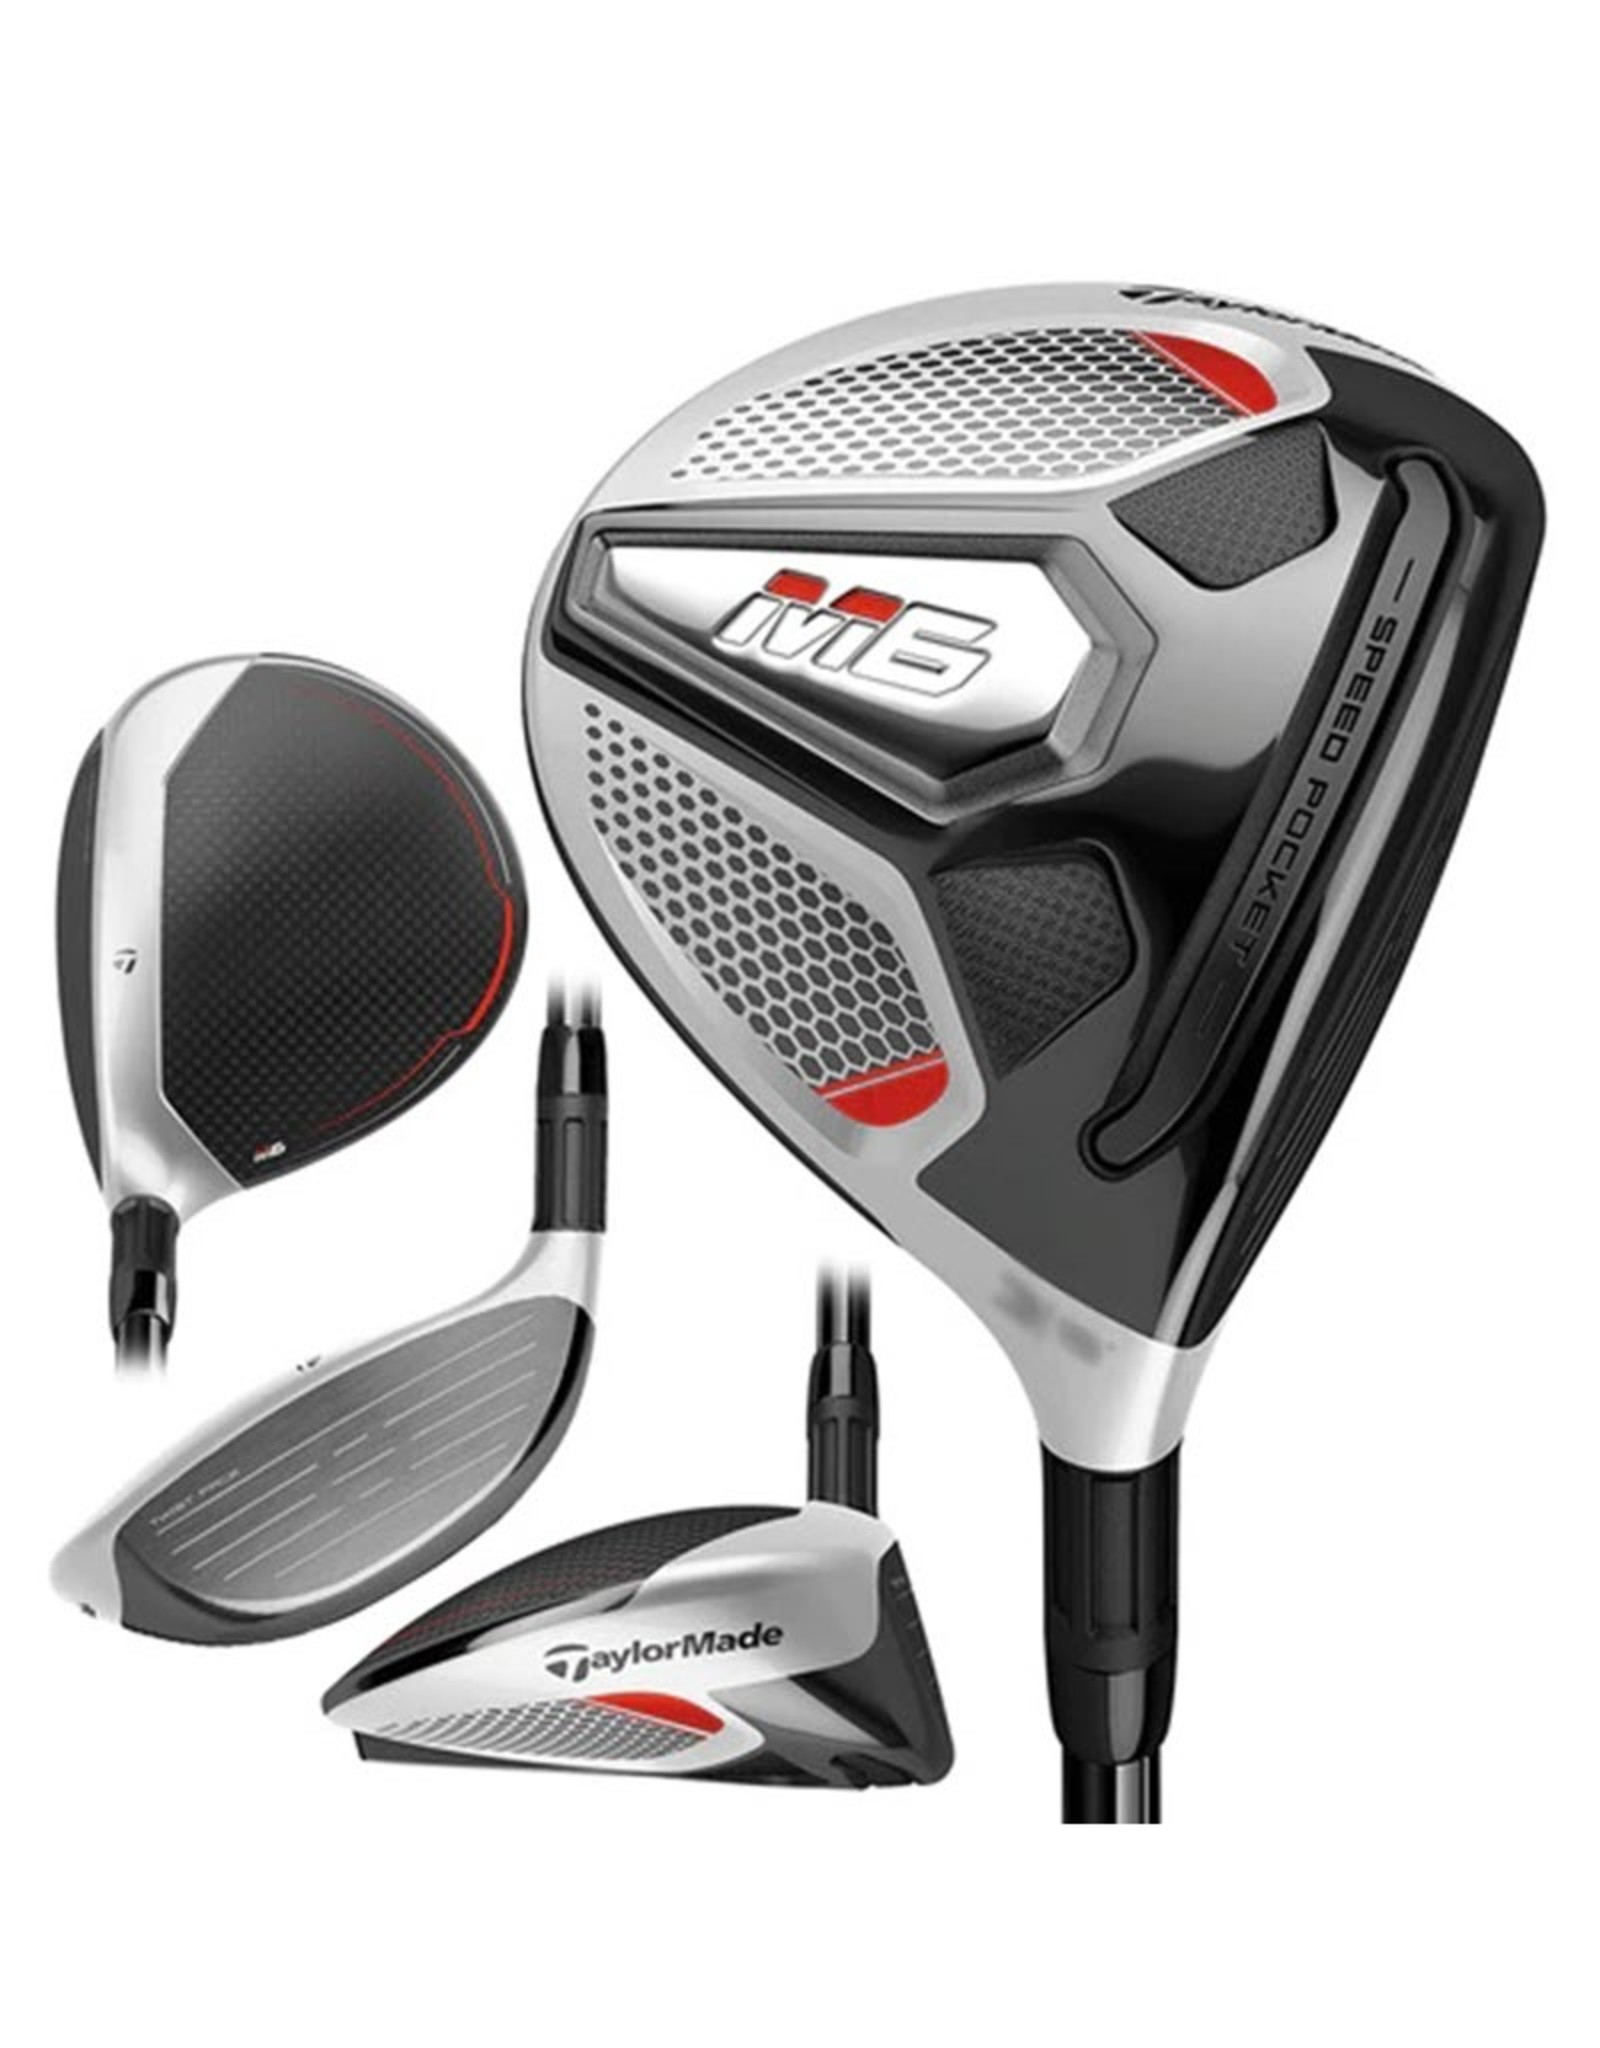 TAYLORMADE TAYLORMADE 2019 M6 FAIRWAY